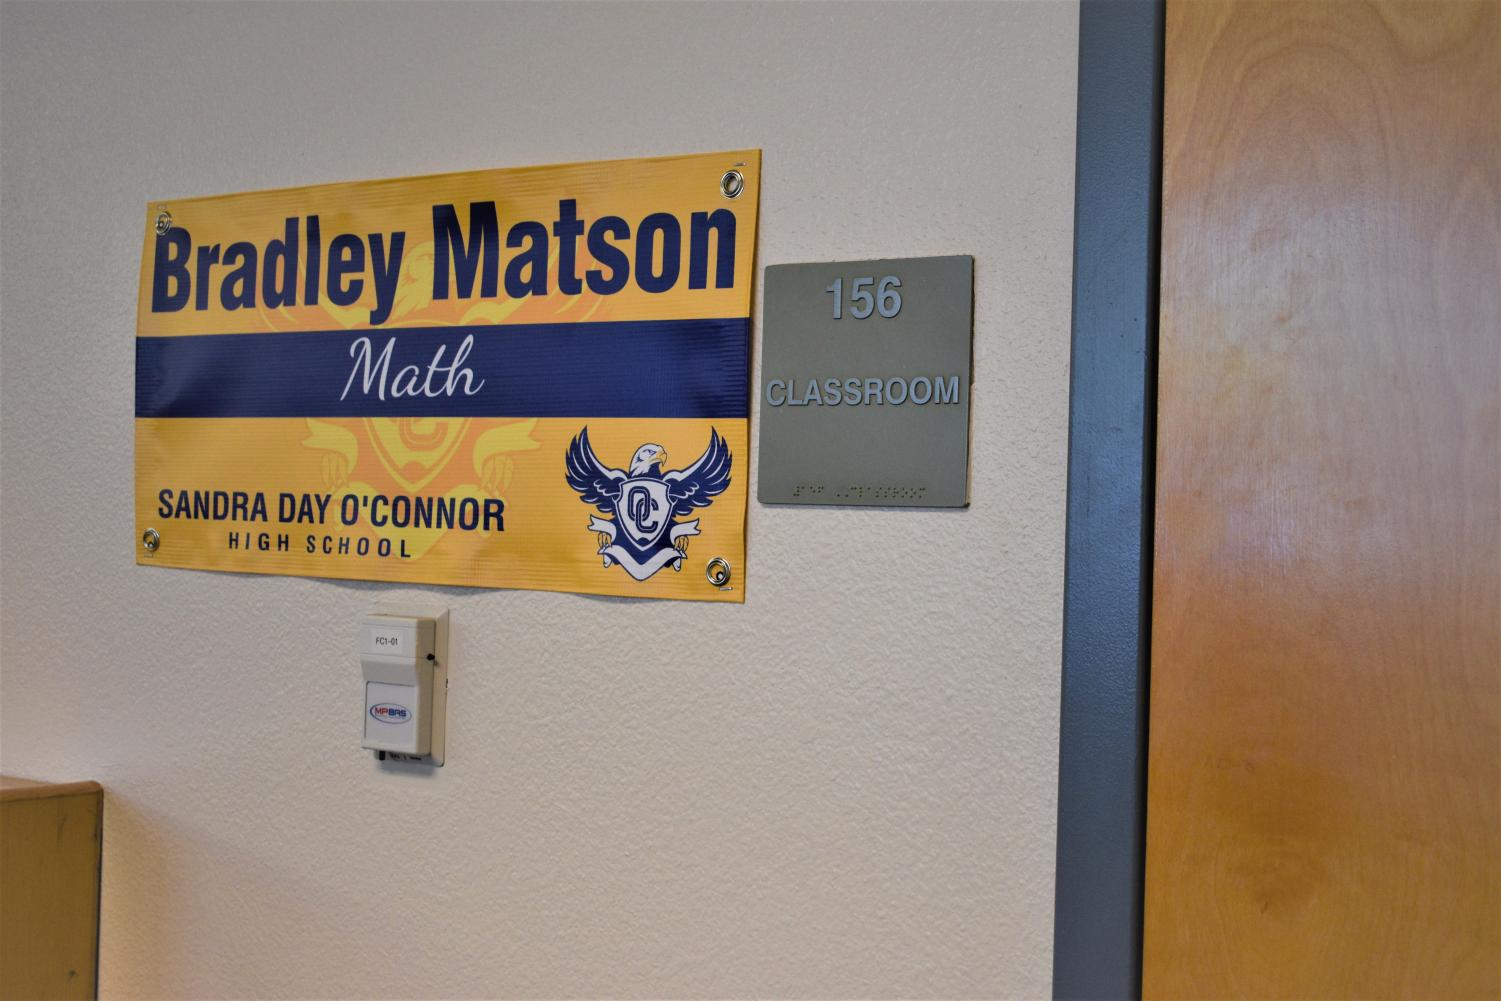 The entrance to Matson's room in the library.